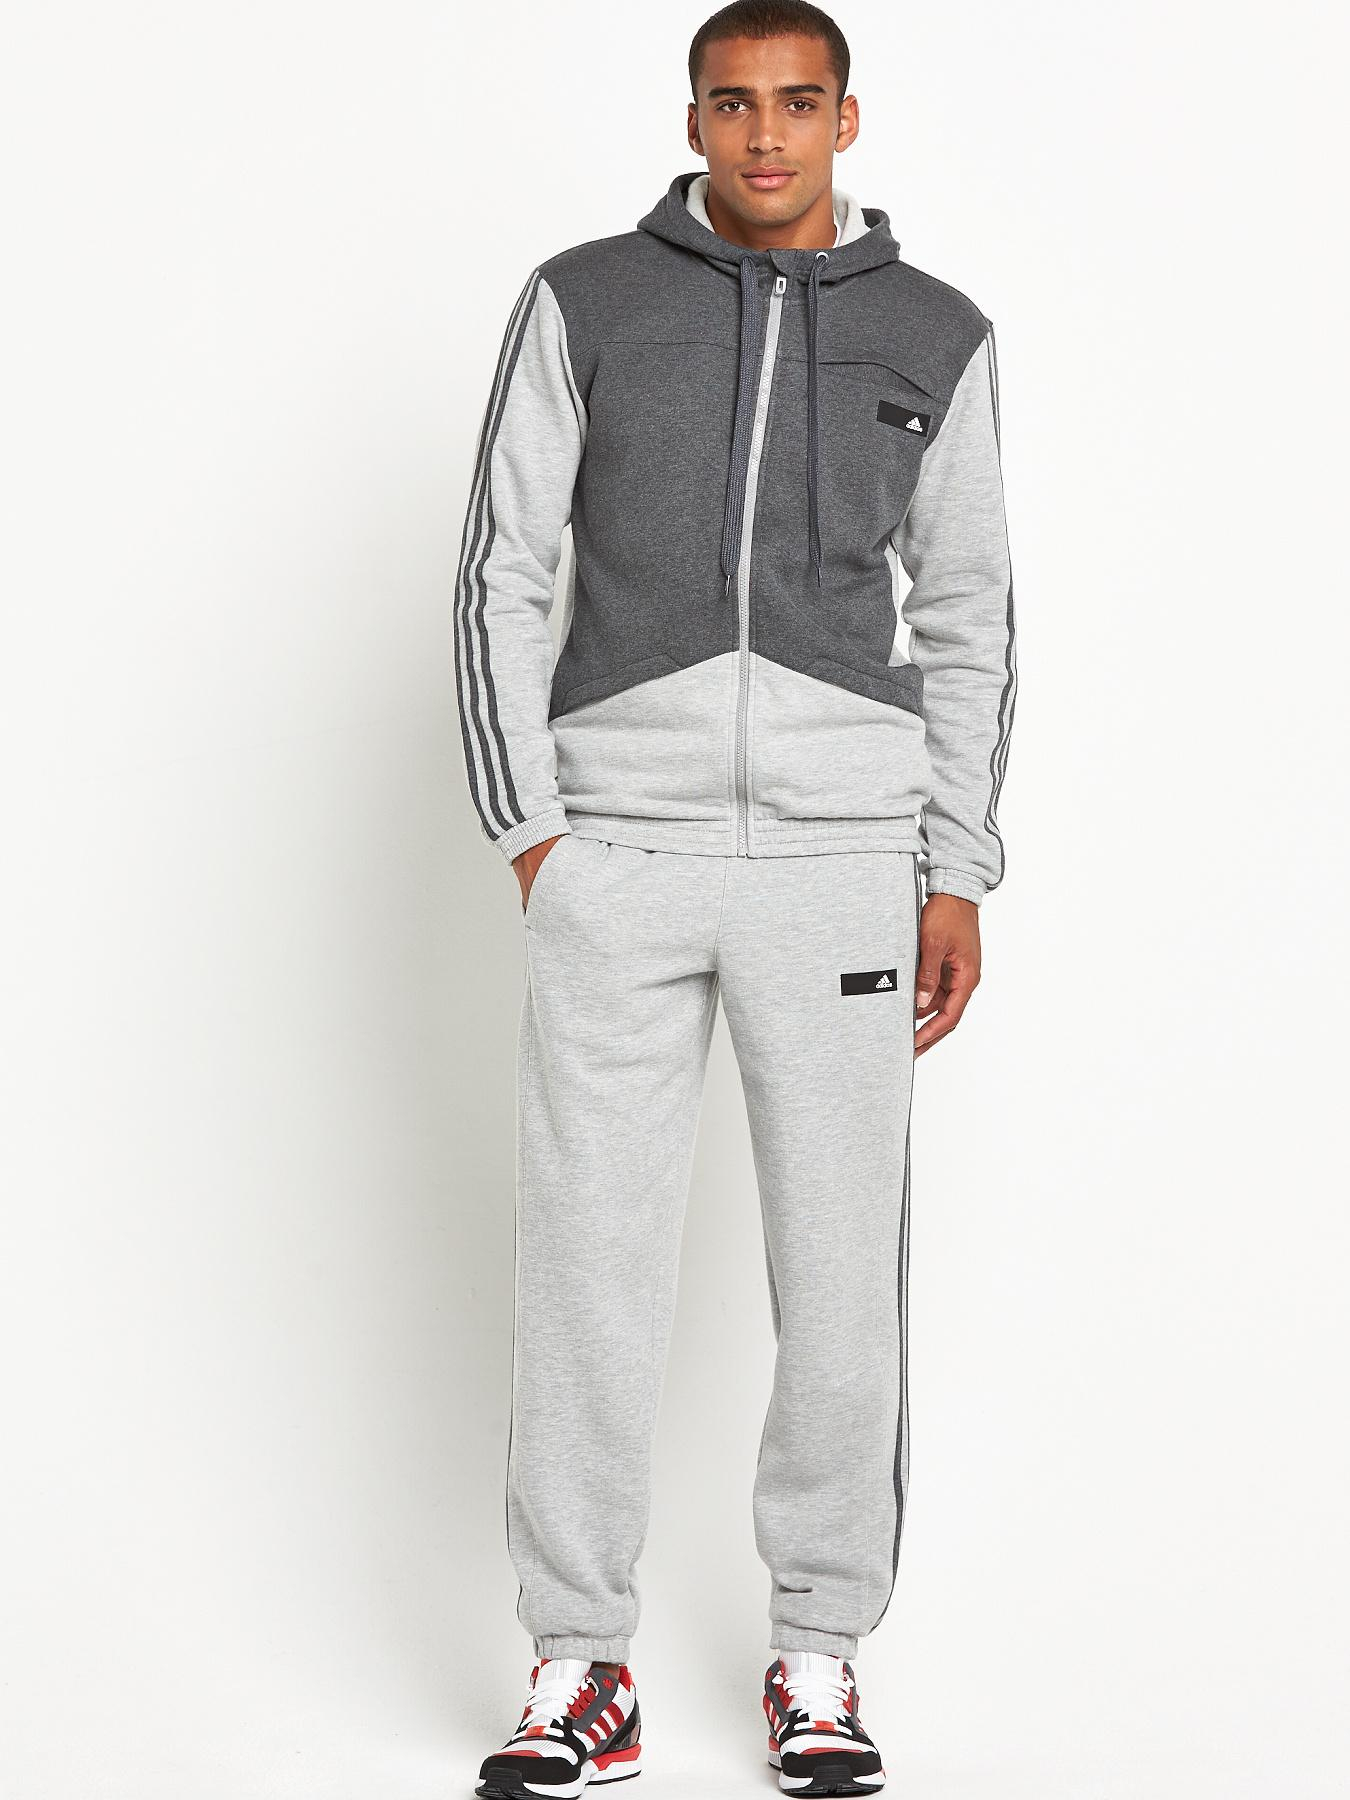 View all mens clothing Full tracksuits are great if you're taking part in team training, big events, or even just lounging around! We stock tracksuit sets, track tops, tracksuit bottoms, hooded tops and more.